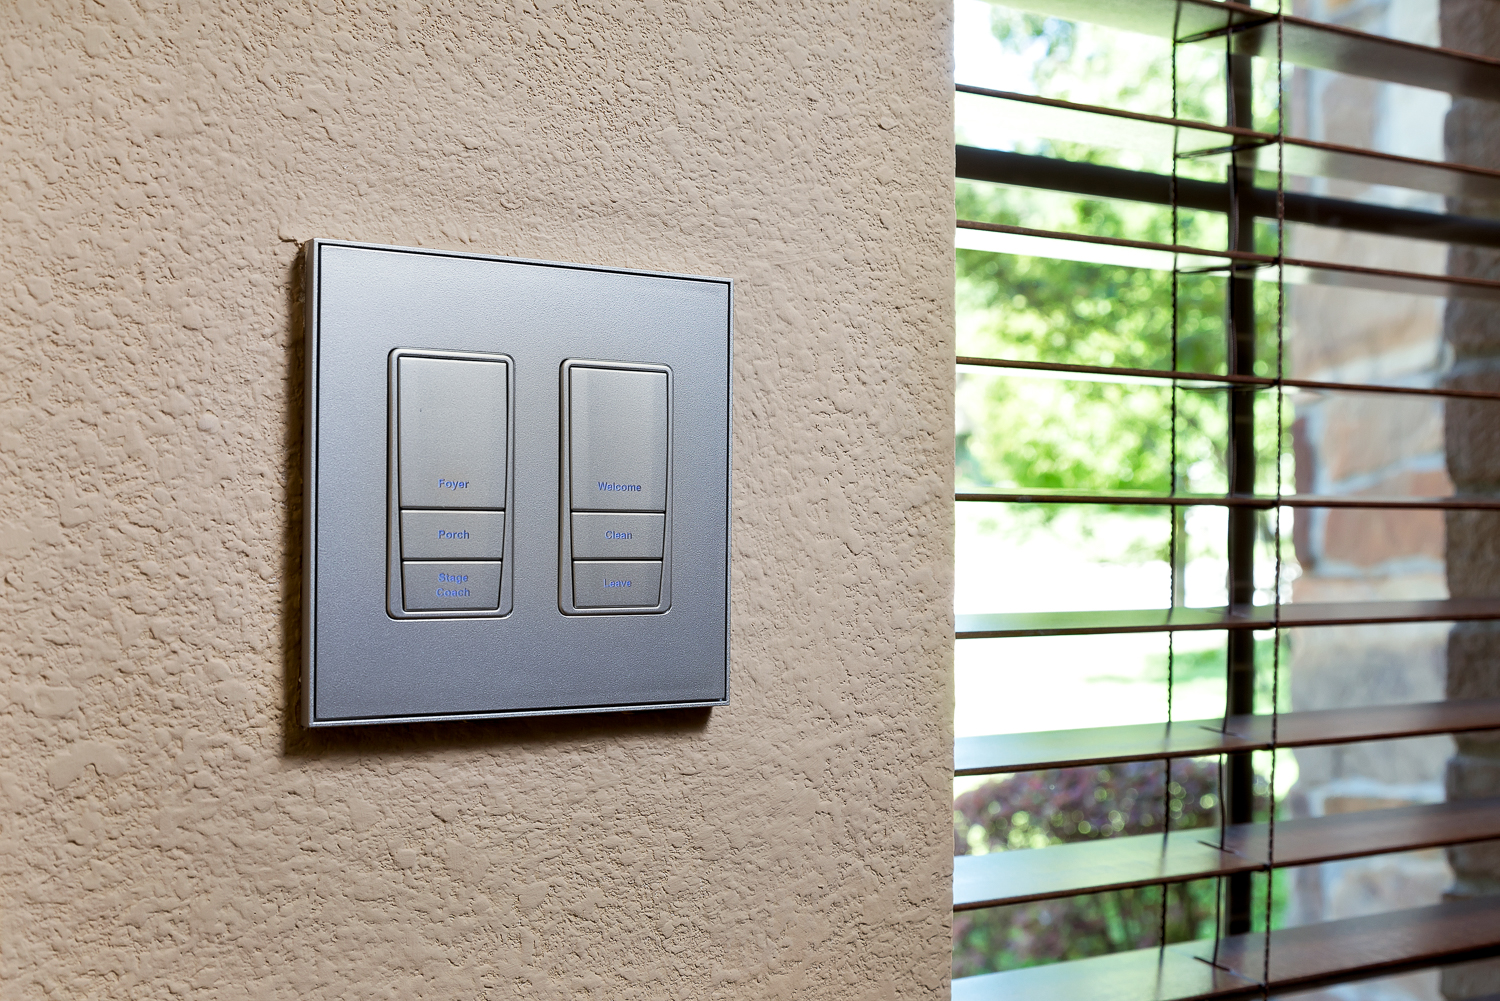 The Vantage Lighting Switches All Throughout the Home